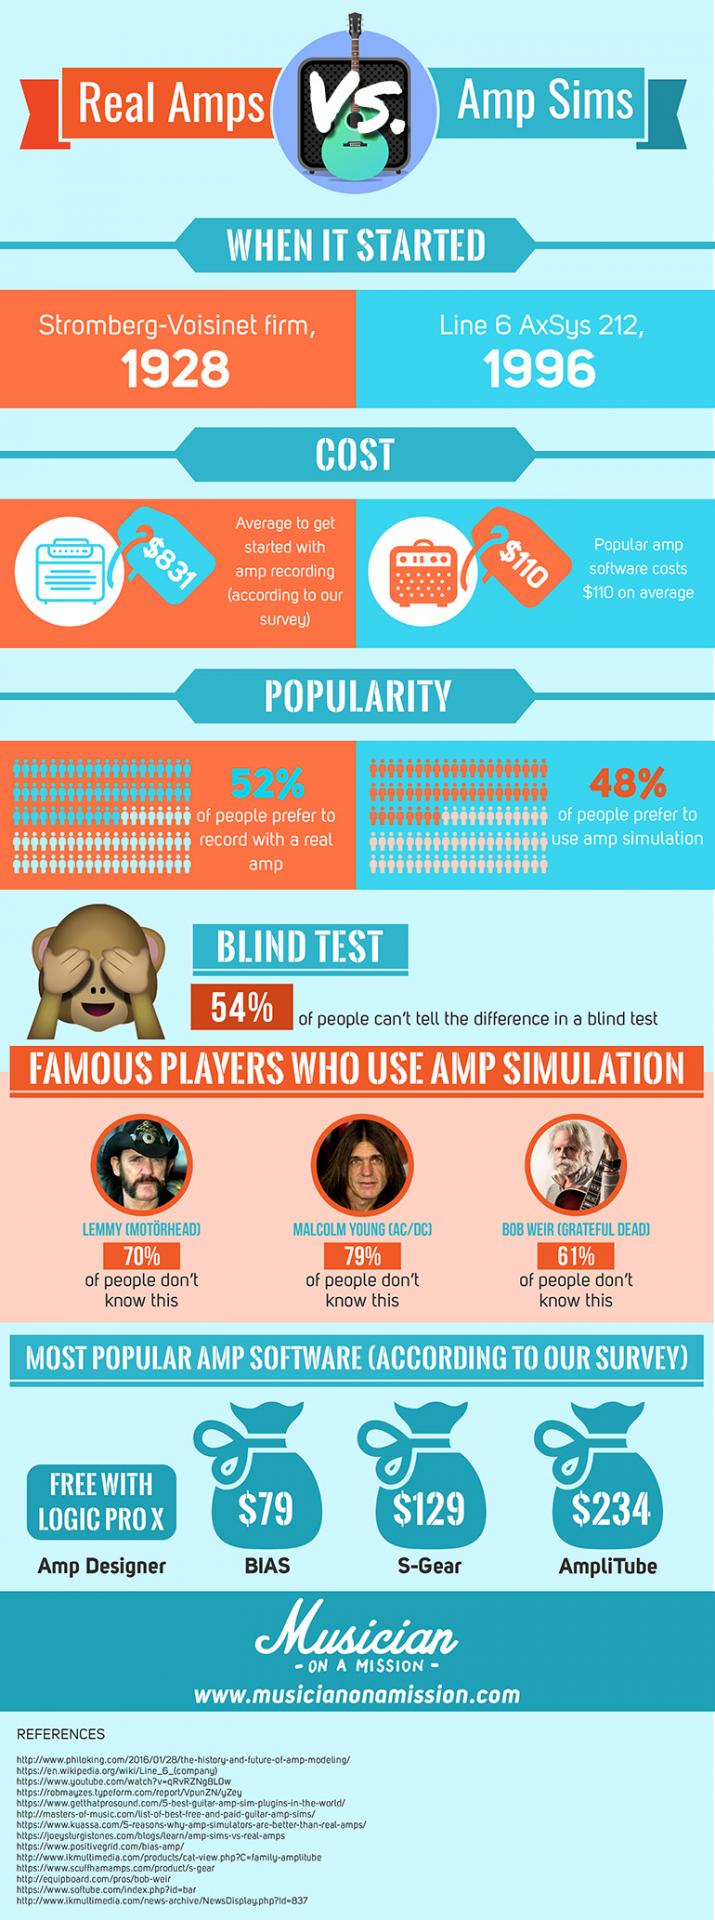 Amps simulations vs real amps infographic